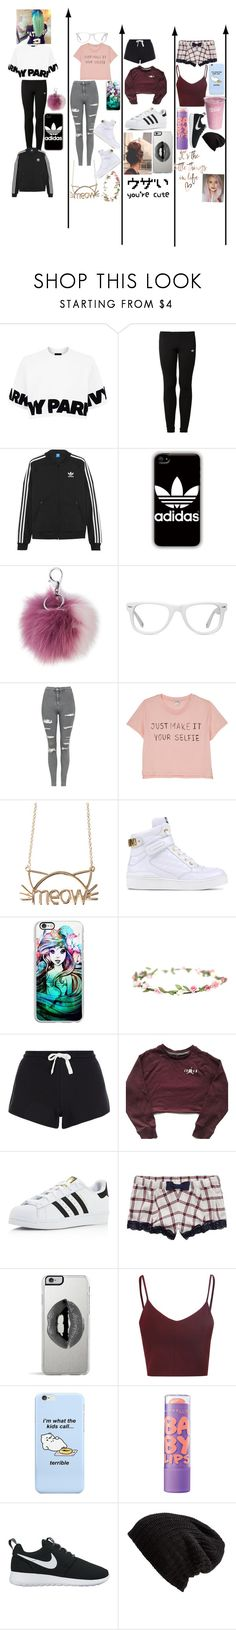 """Which do you like best?"" by scarter-ii on Polyvore featuring Topshop, adidas Originals, adidas, Adrienne Landau, Muse, Monki, Moschino, Samsung, New Look and Aerie"